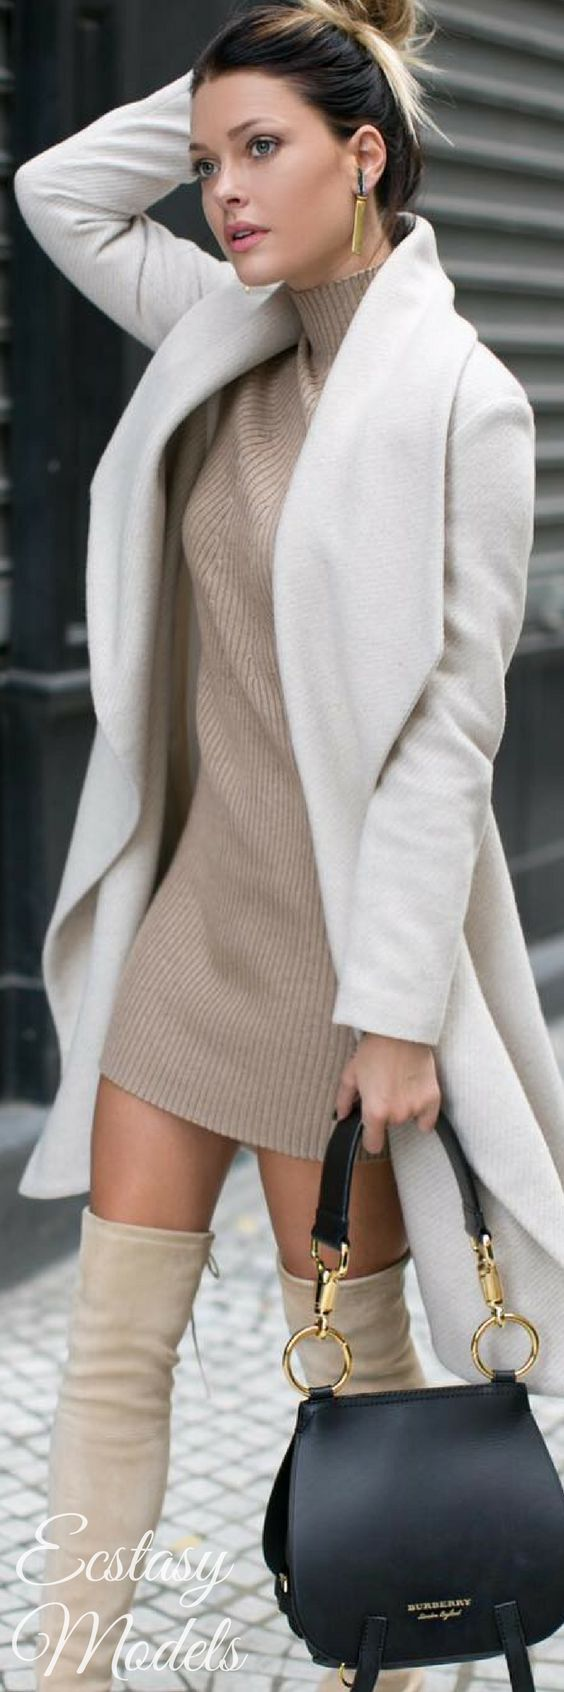 Missguided Knitted  Mini Dress // Fashion Look by Caroline Receveu: